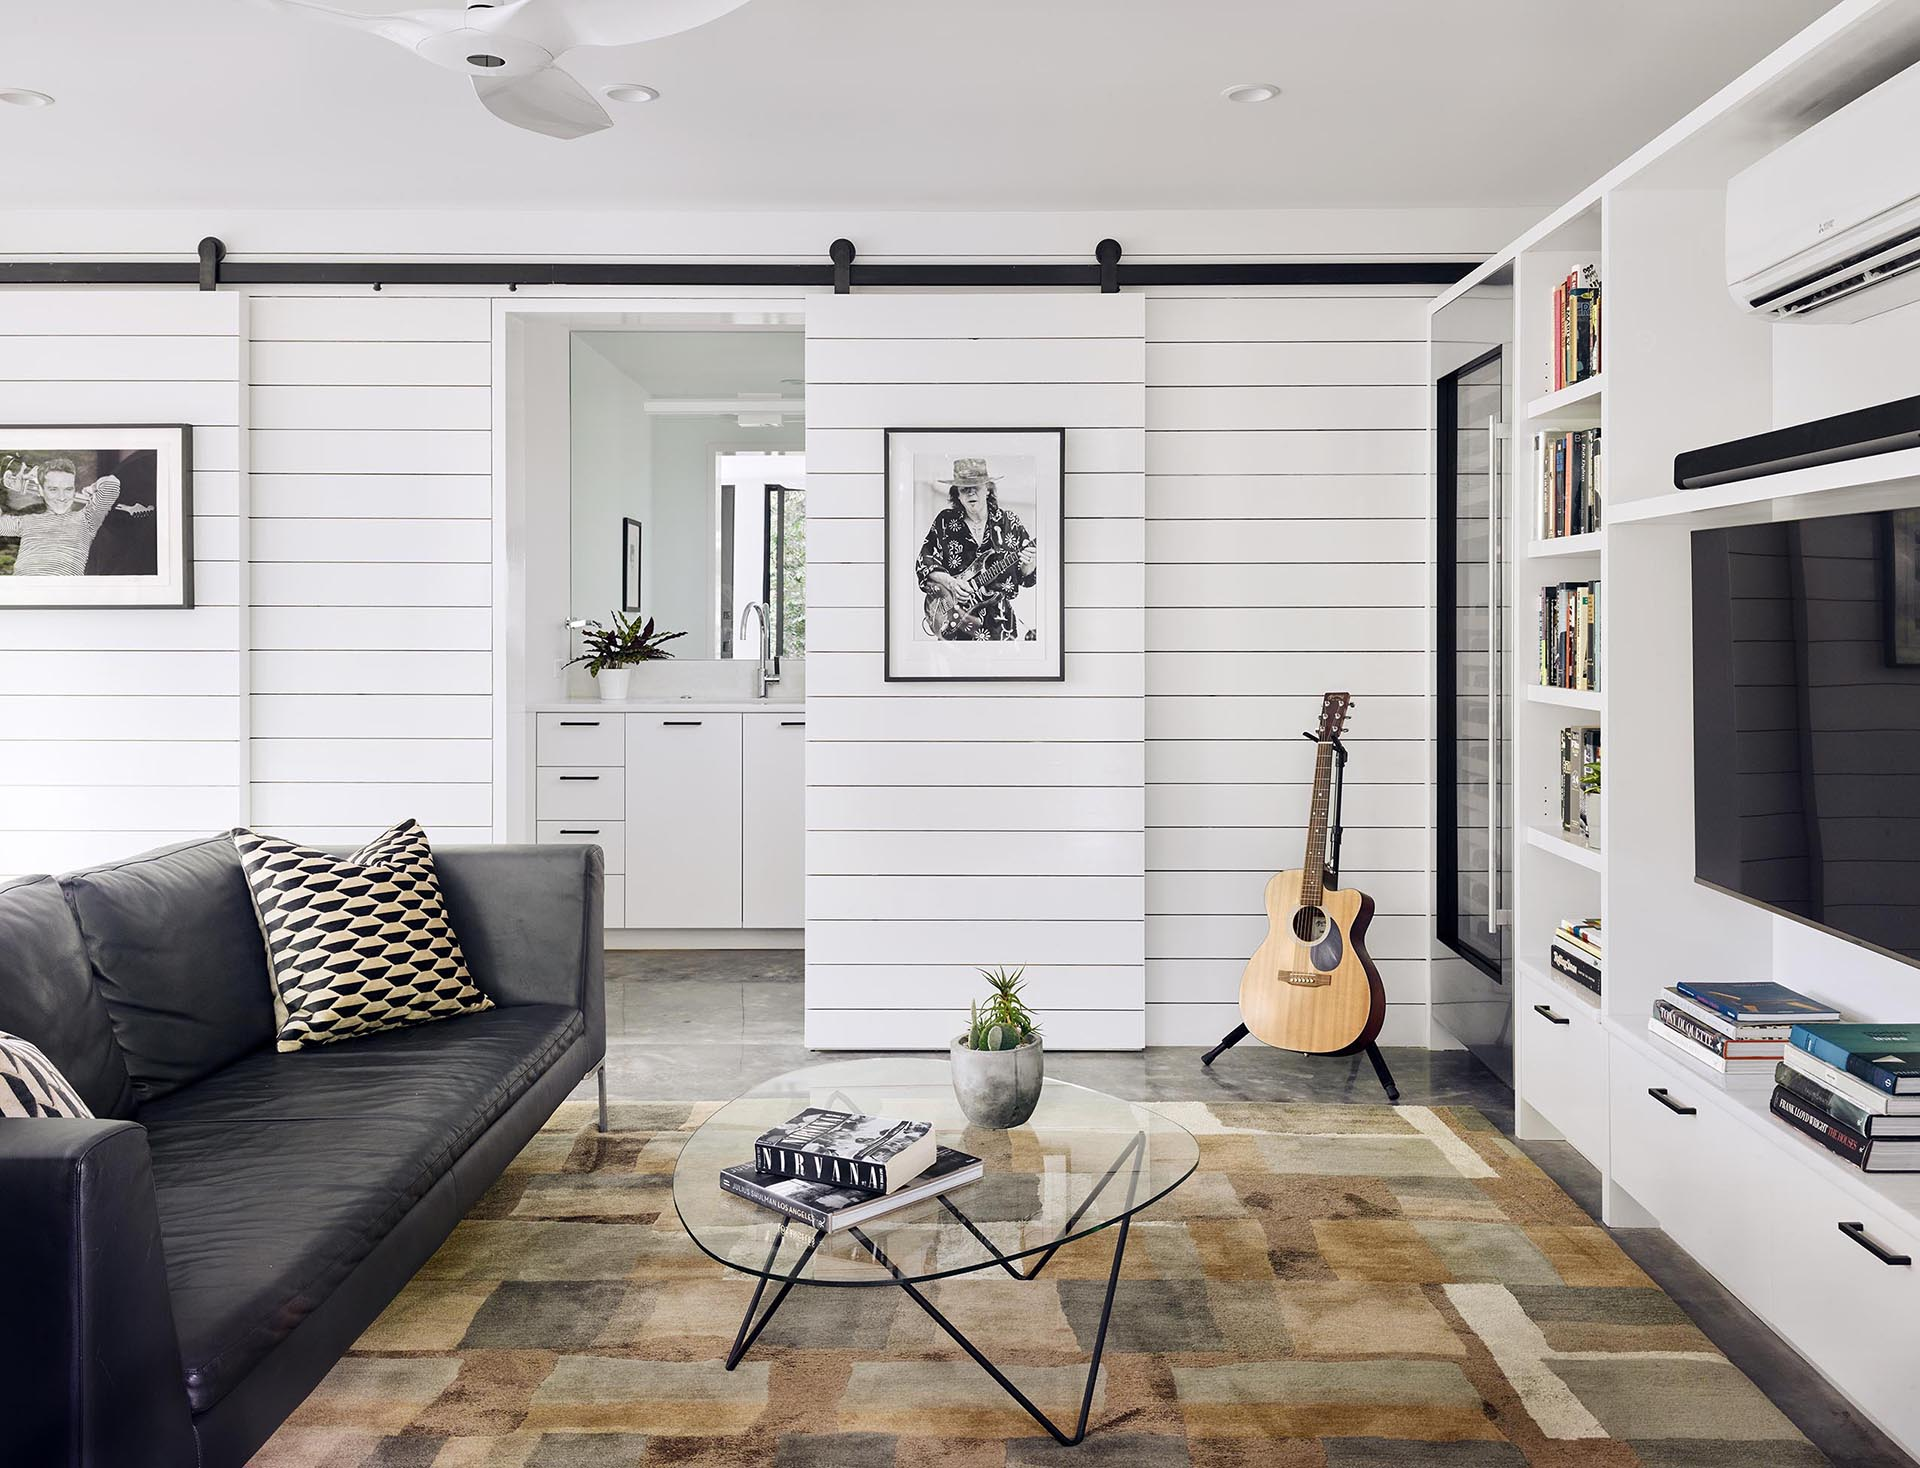 A modern living room with white walls, sliding barn doors, and a custom shelving unit that surrounds a television.